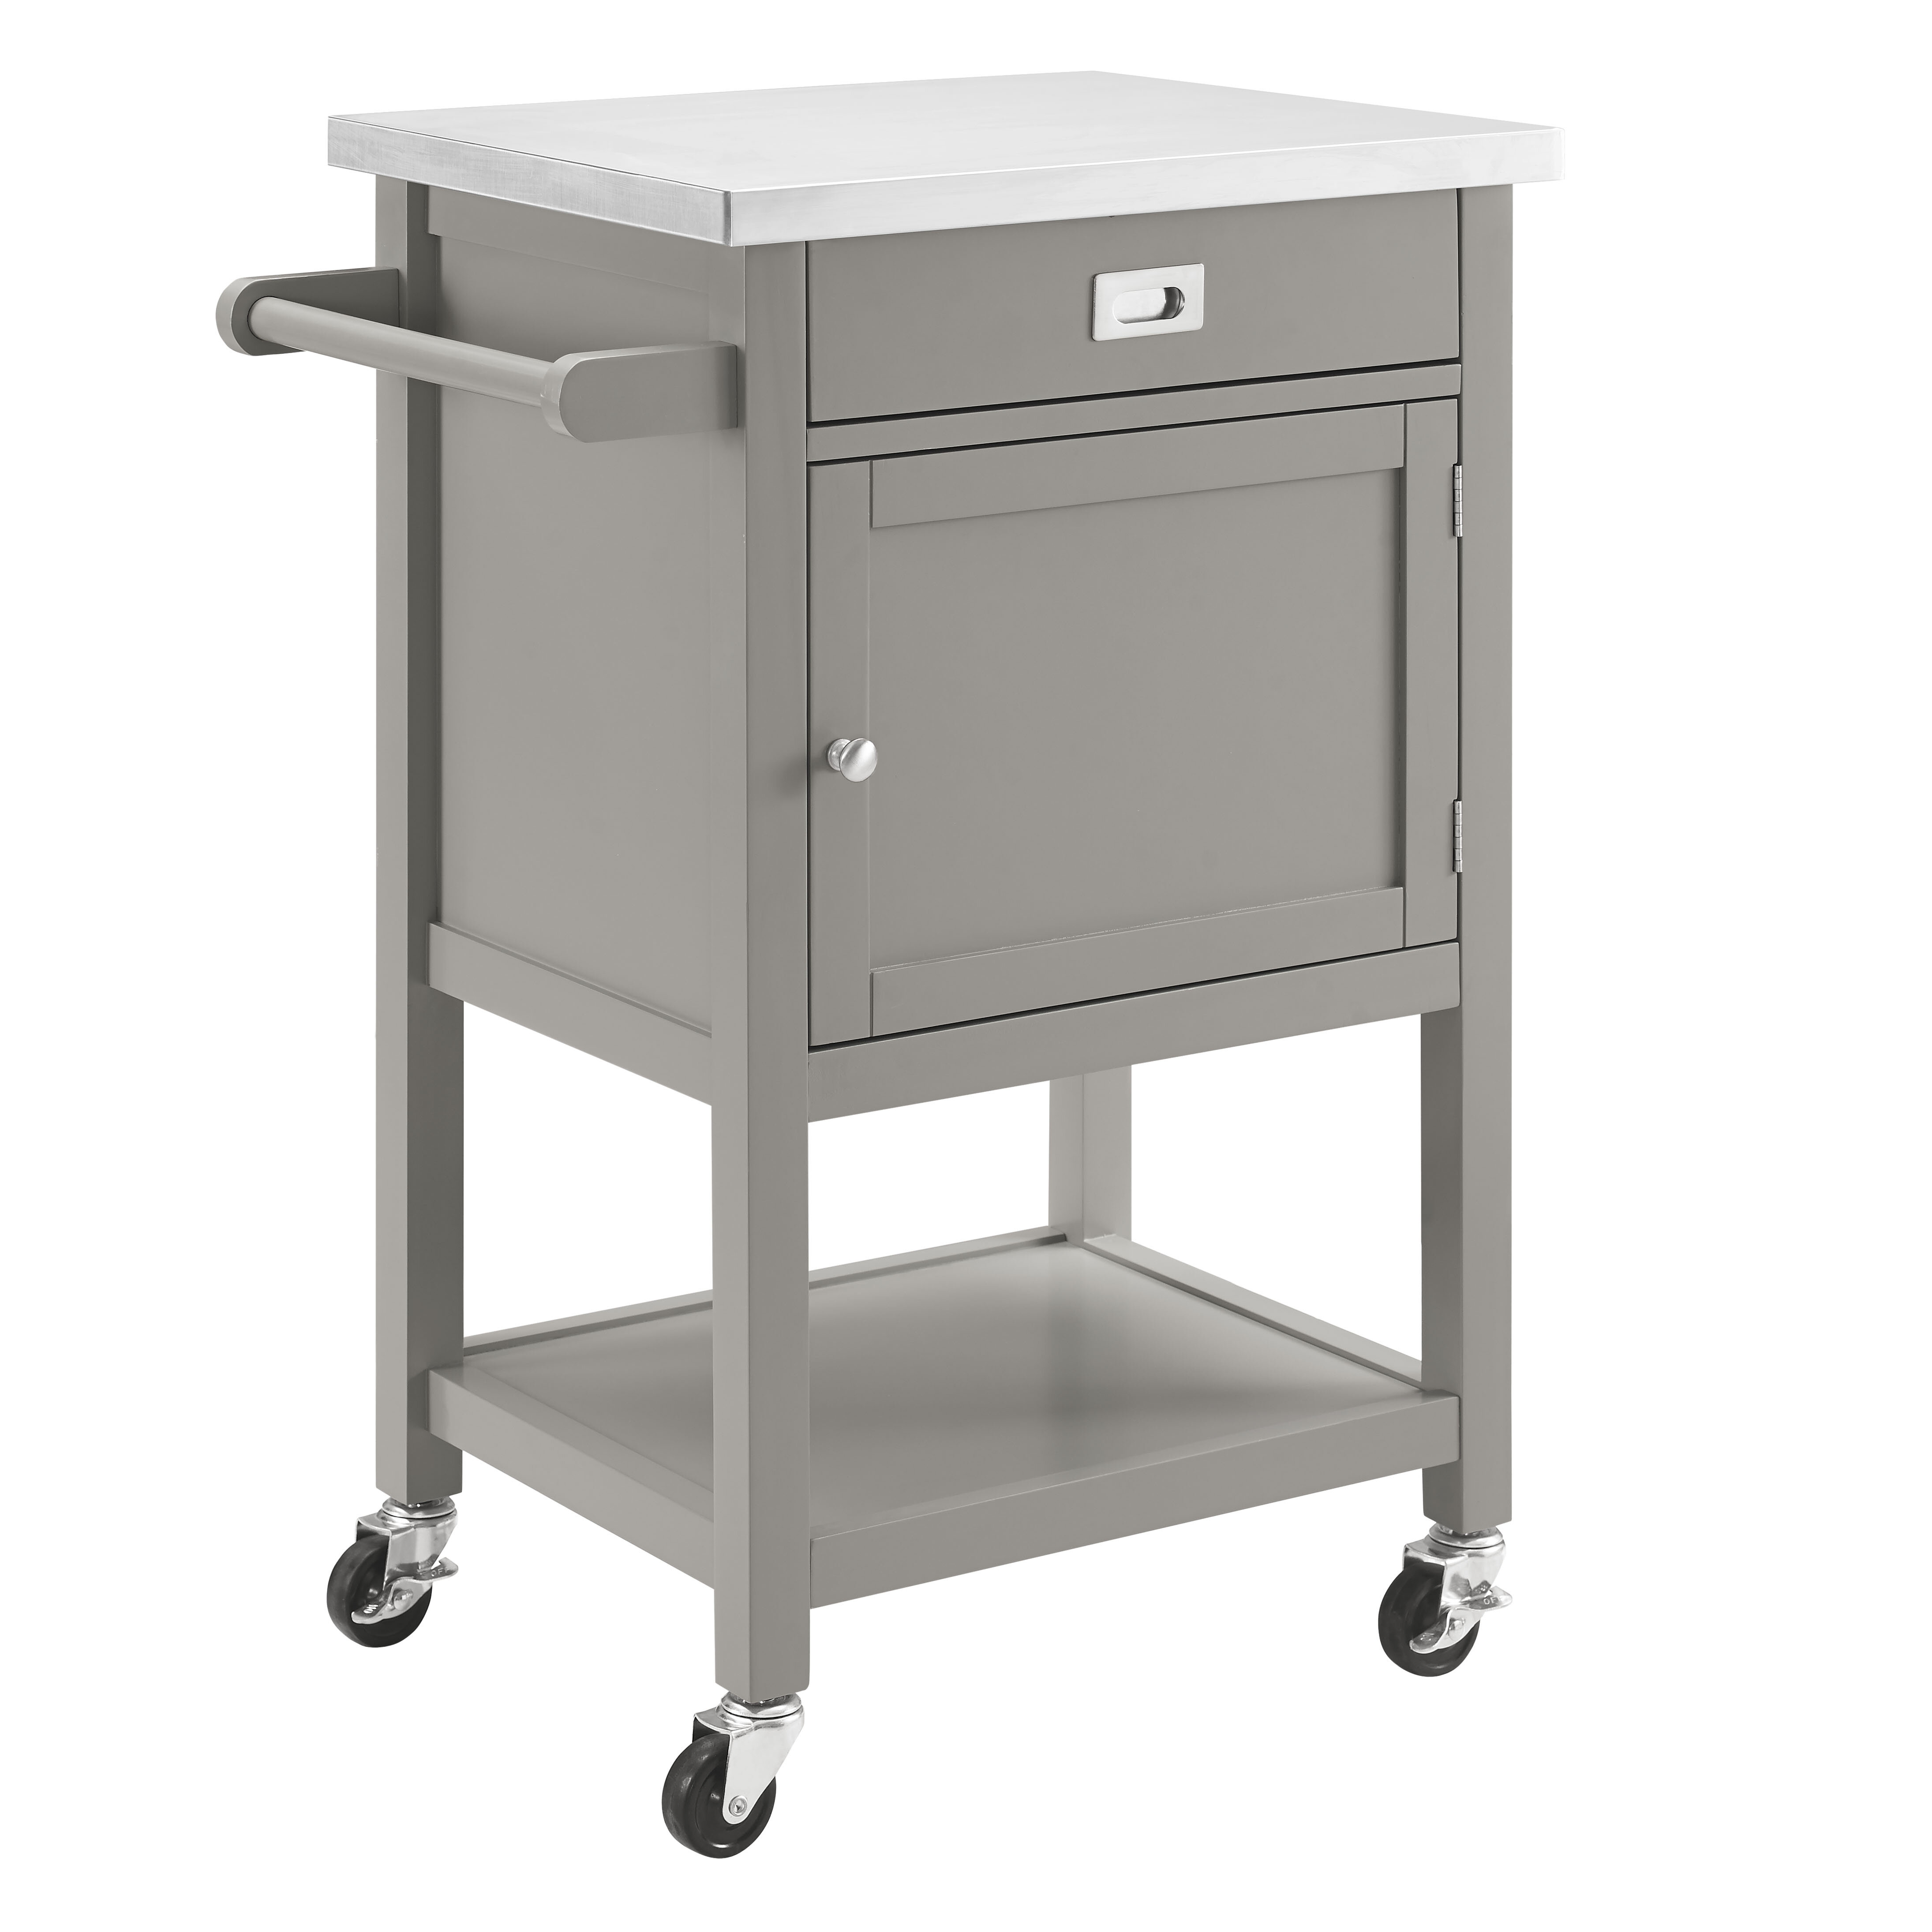 Willa Arlo Interiors Eira Kitchen Cart With Stainless Steel Top Reviews Wayfair